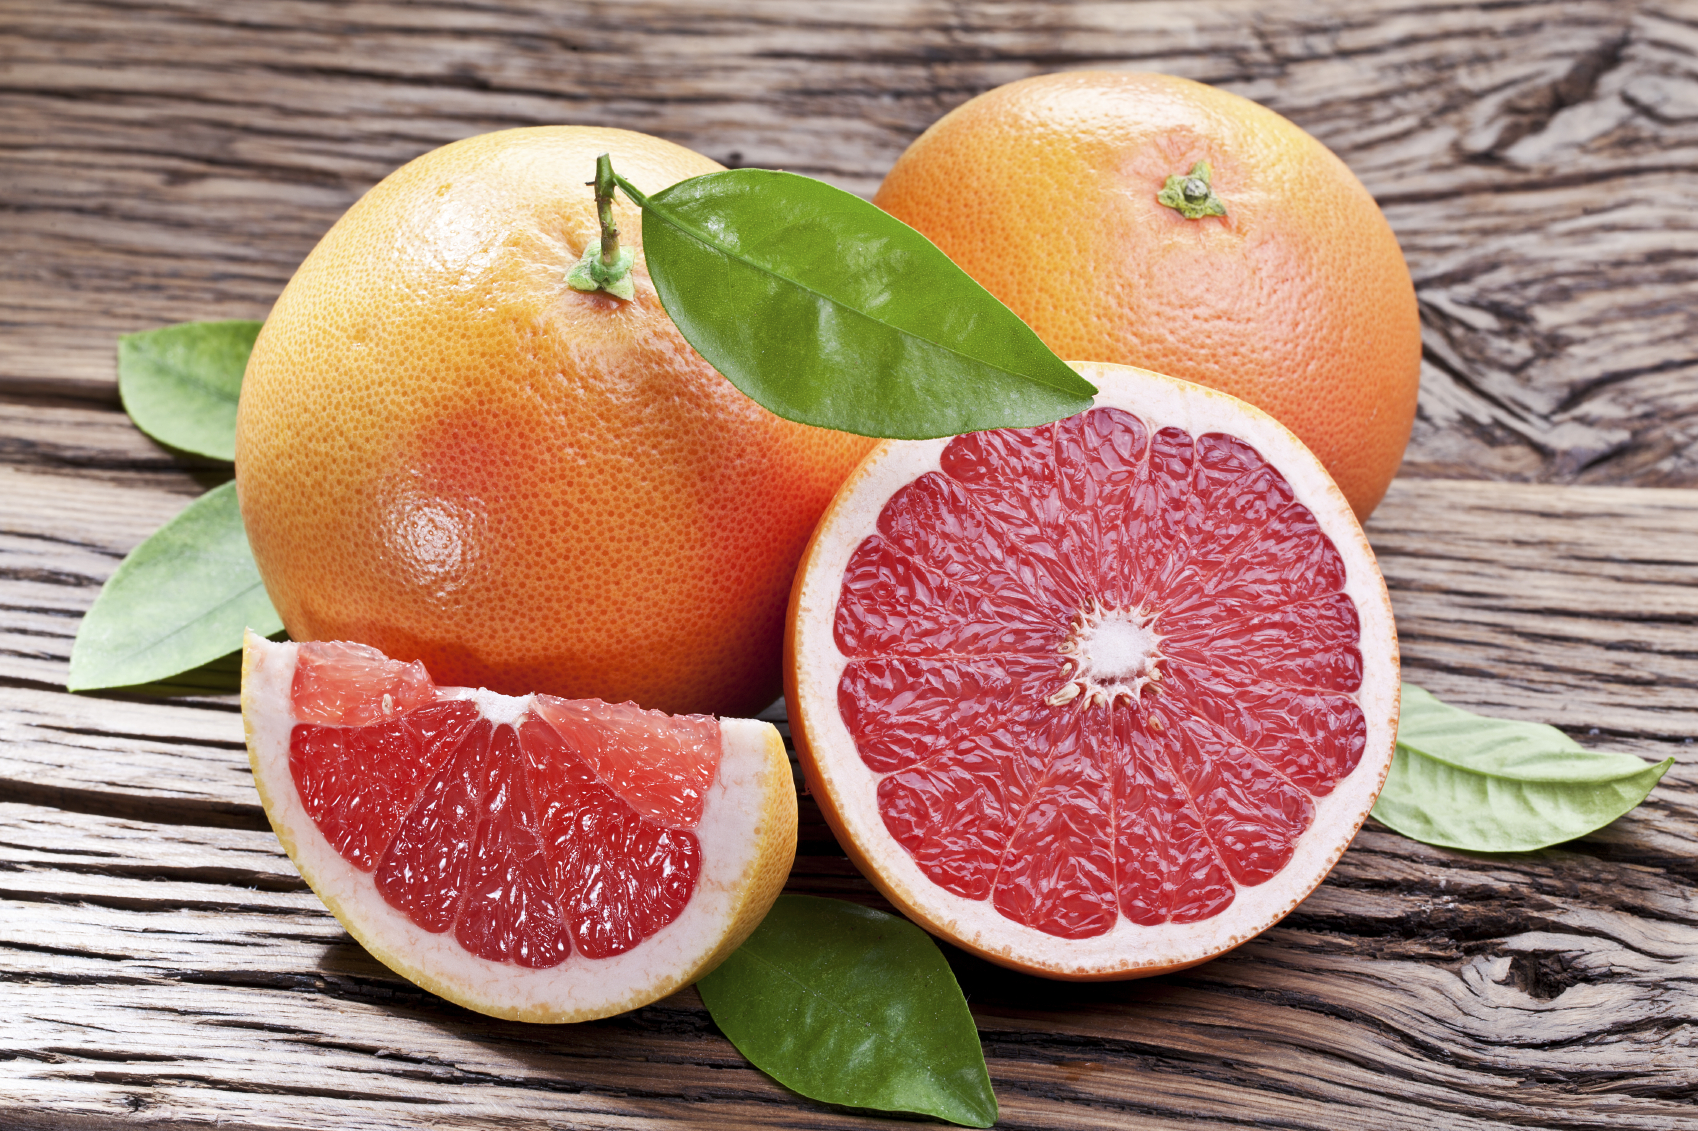 Grapefruit-Wood-Material-Food-Orange-Color-Table_Medium